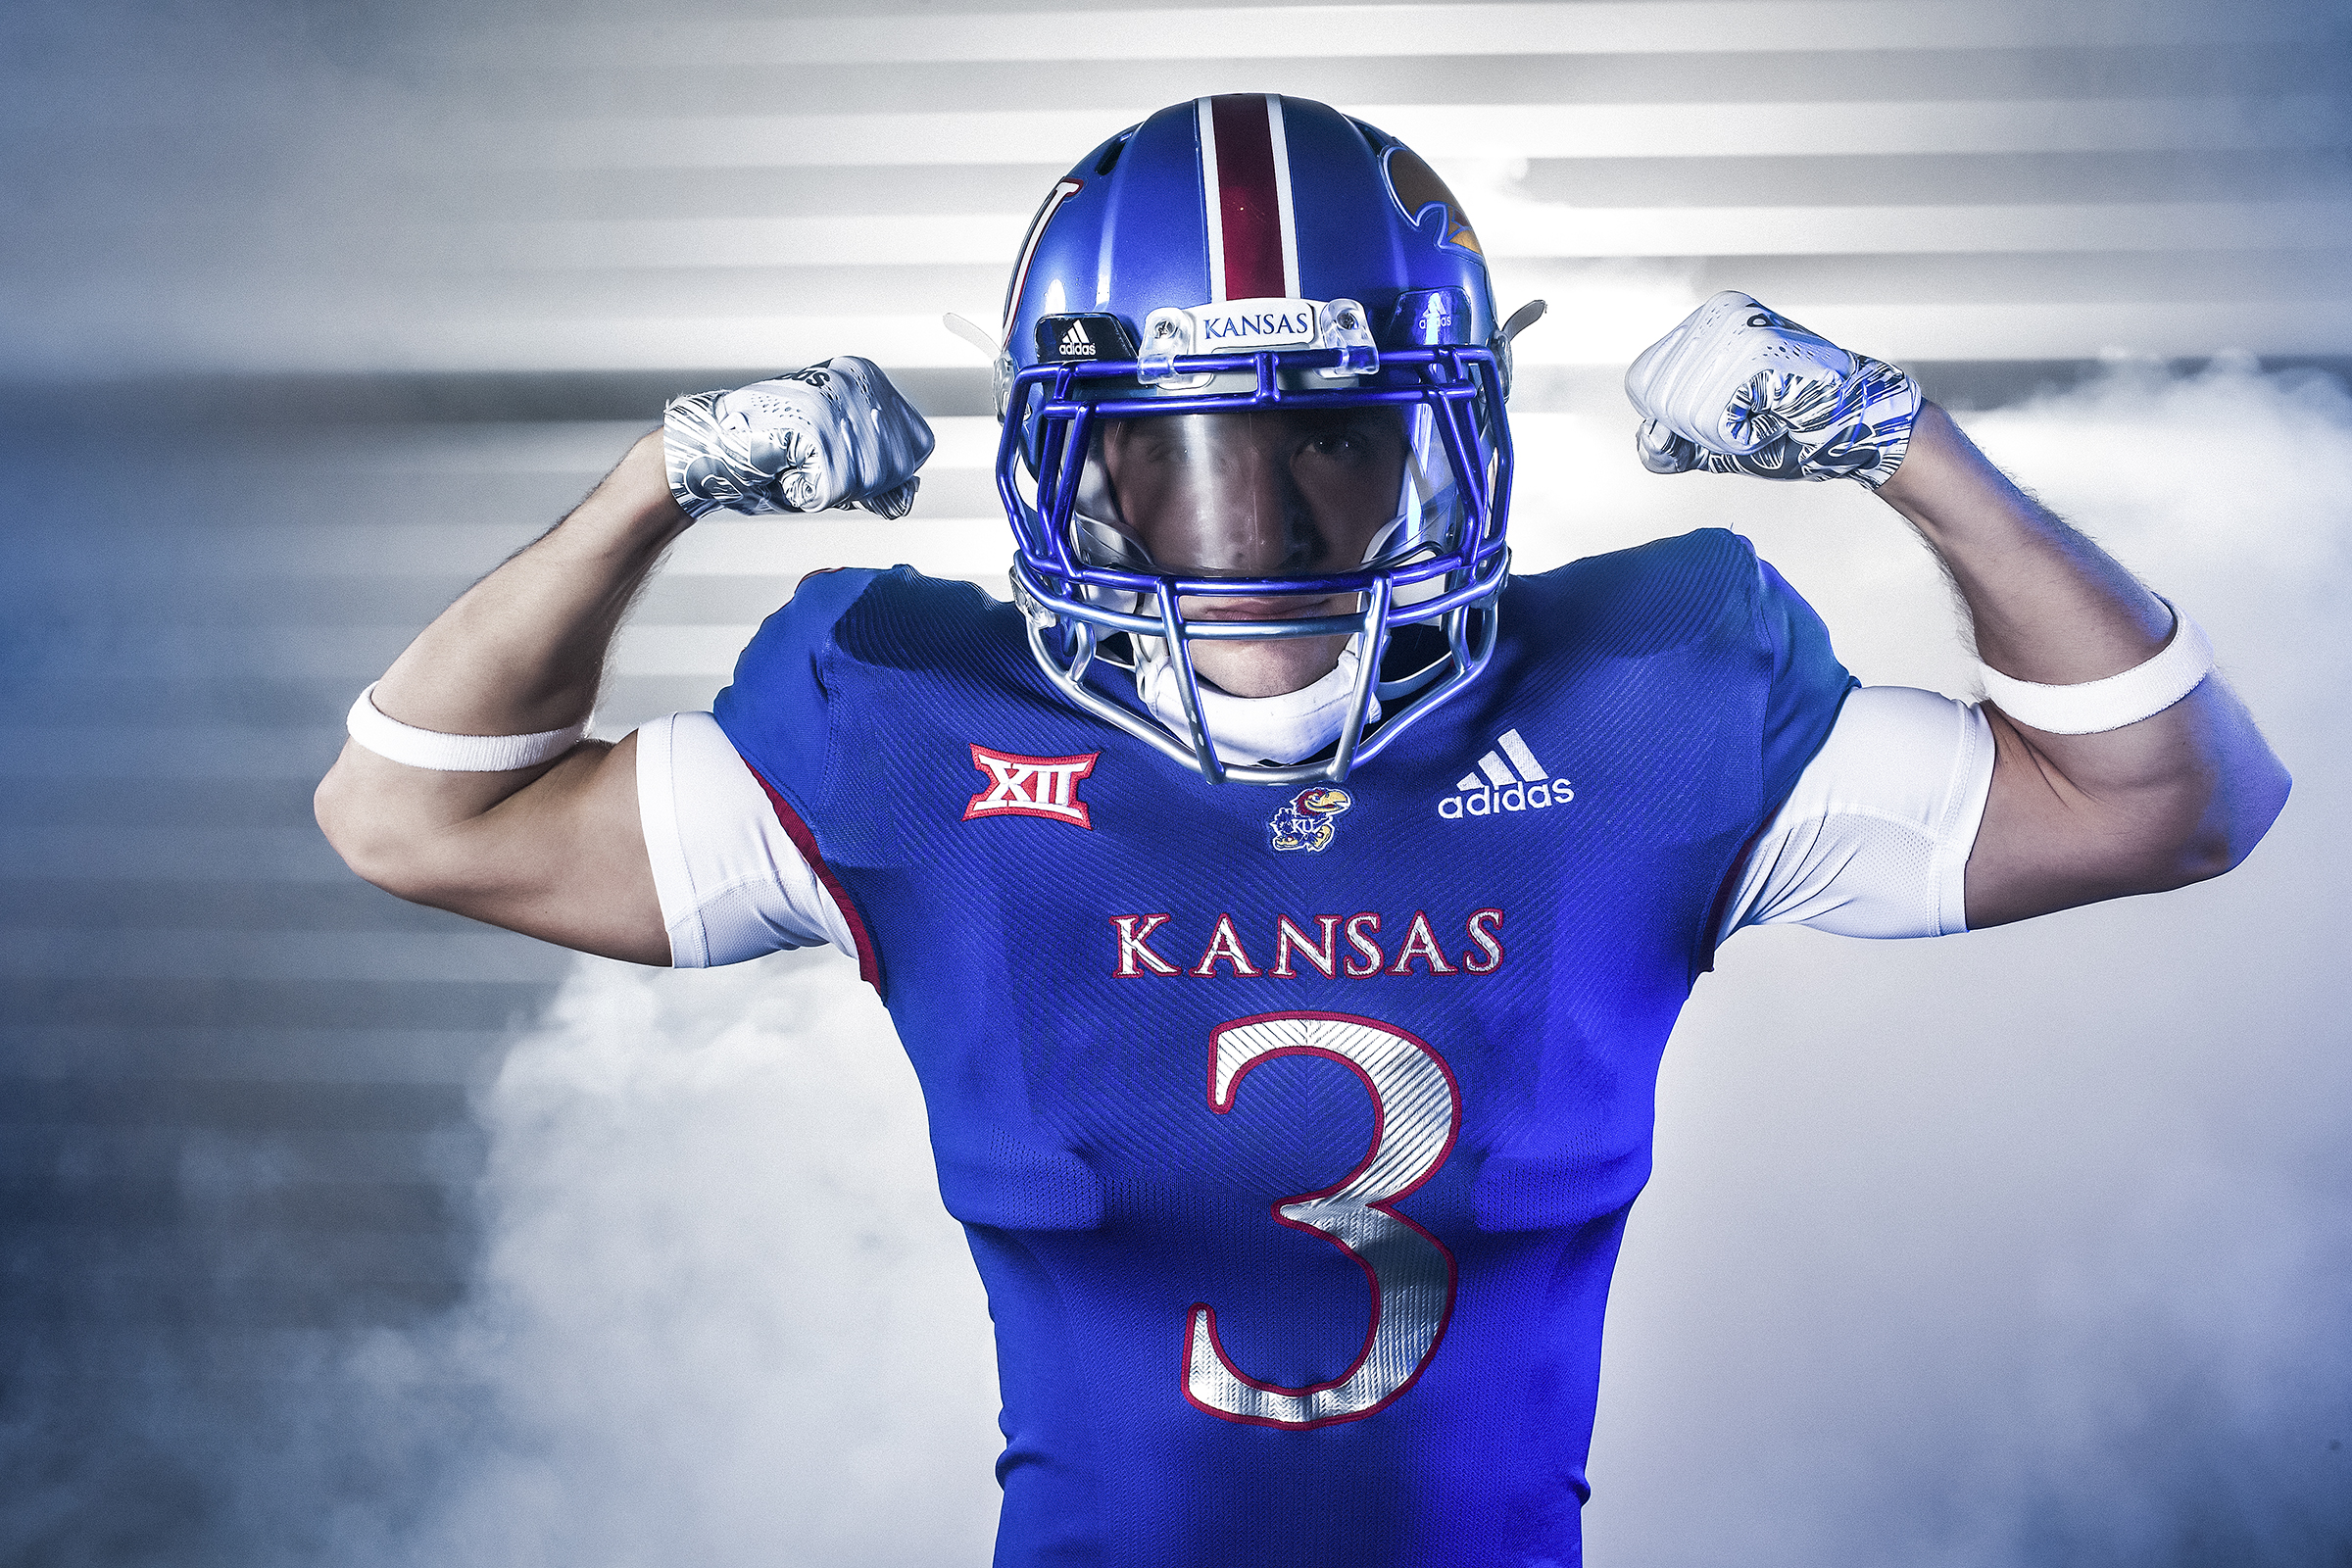 2018_07_Adidas_NCAA_A_Studio_Stills_Kansas_0389-1.jpg